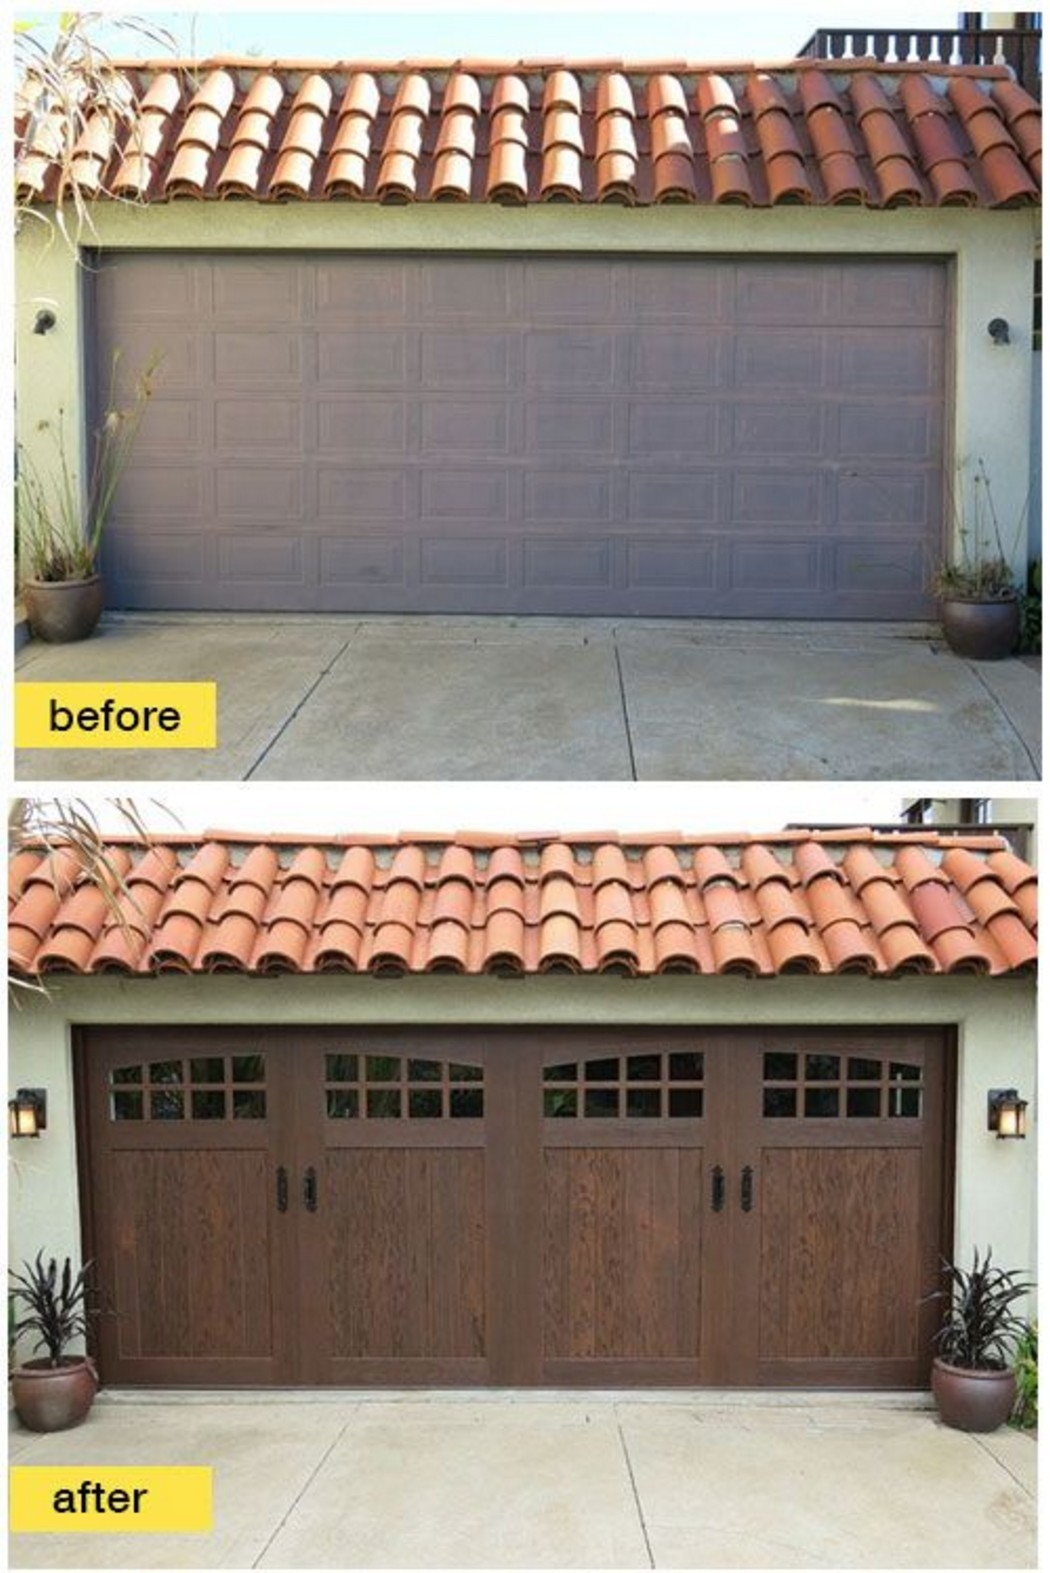 Garage door makeover ideas garrdenoflove for Best windows for a garage